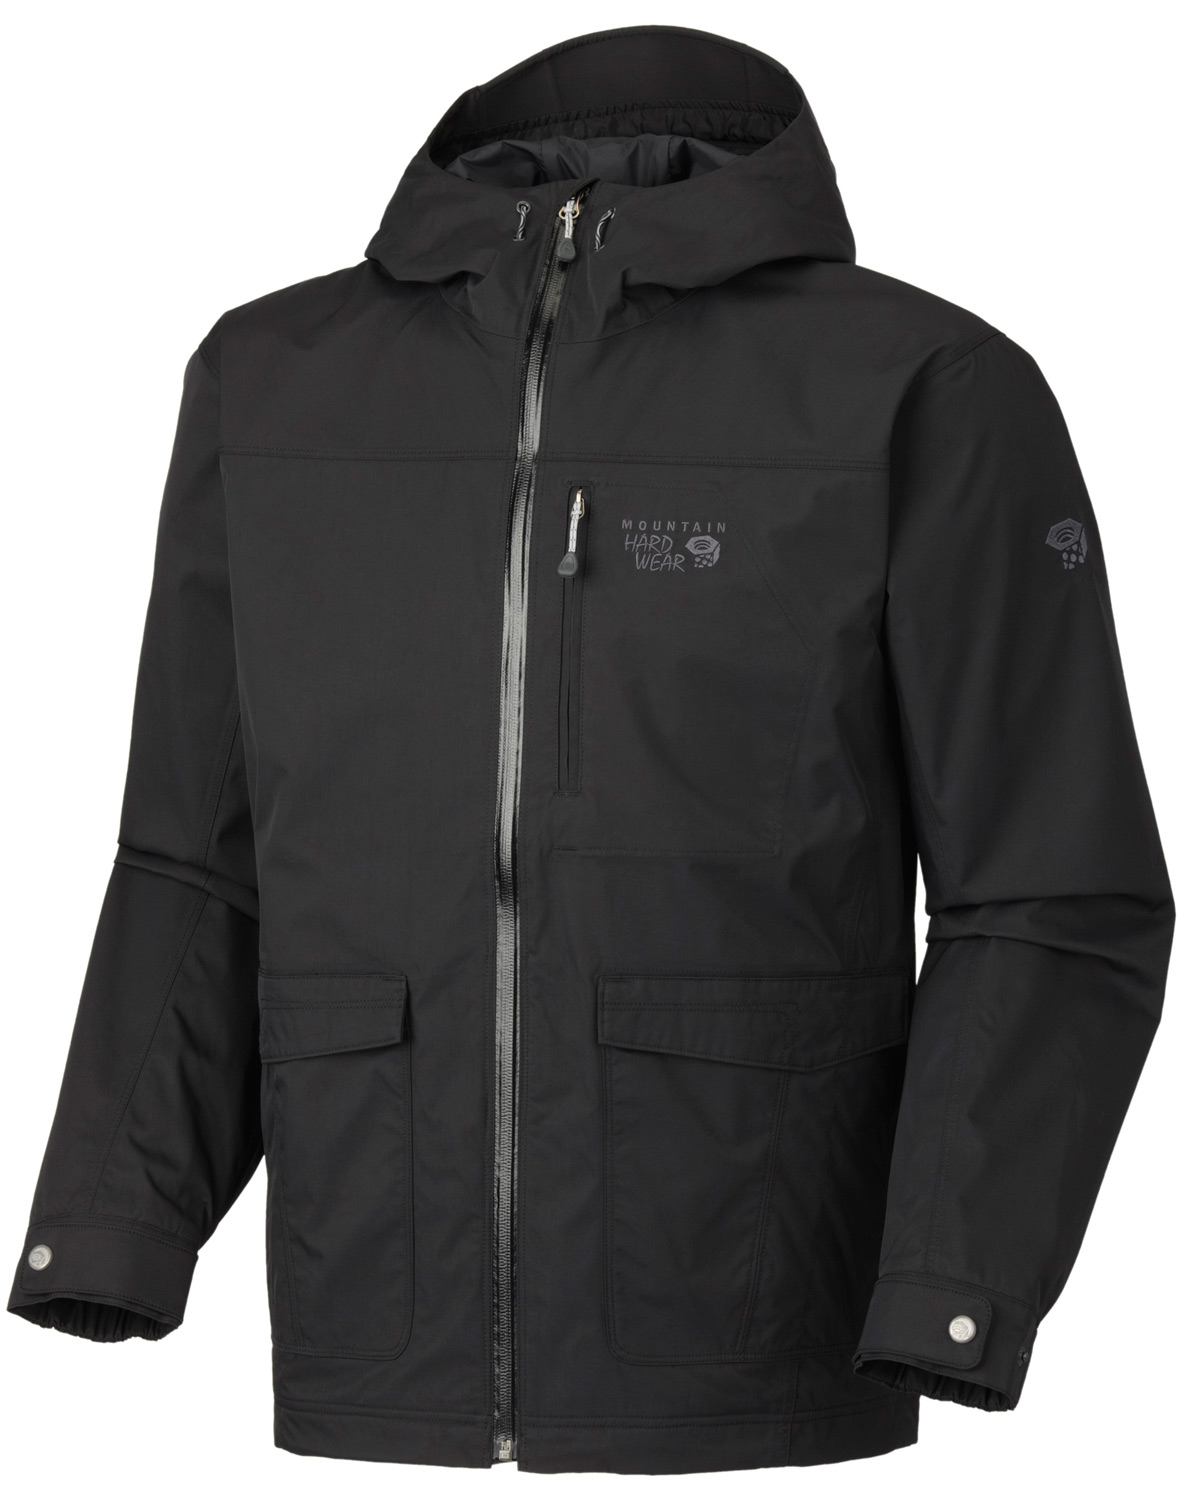 "Key Features of the Mountain Hardwear Ulster Jacket: Dual-entry cargo pockets and zippered chest pocket Attached, adjustable hood Dual hem drawcords seal in warmth Micro-Chamois-lined chin guard prevents zipper chafe Adjustable cuffs Avg Weight: 1 lb. 9 oz.; 705 g. (size large) Center Back Length: 30""; 76 cm. Fabric: Body Maltania Twill (100% nylon) Laminate Conduit - $127.95"